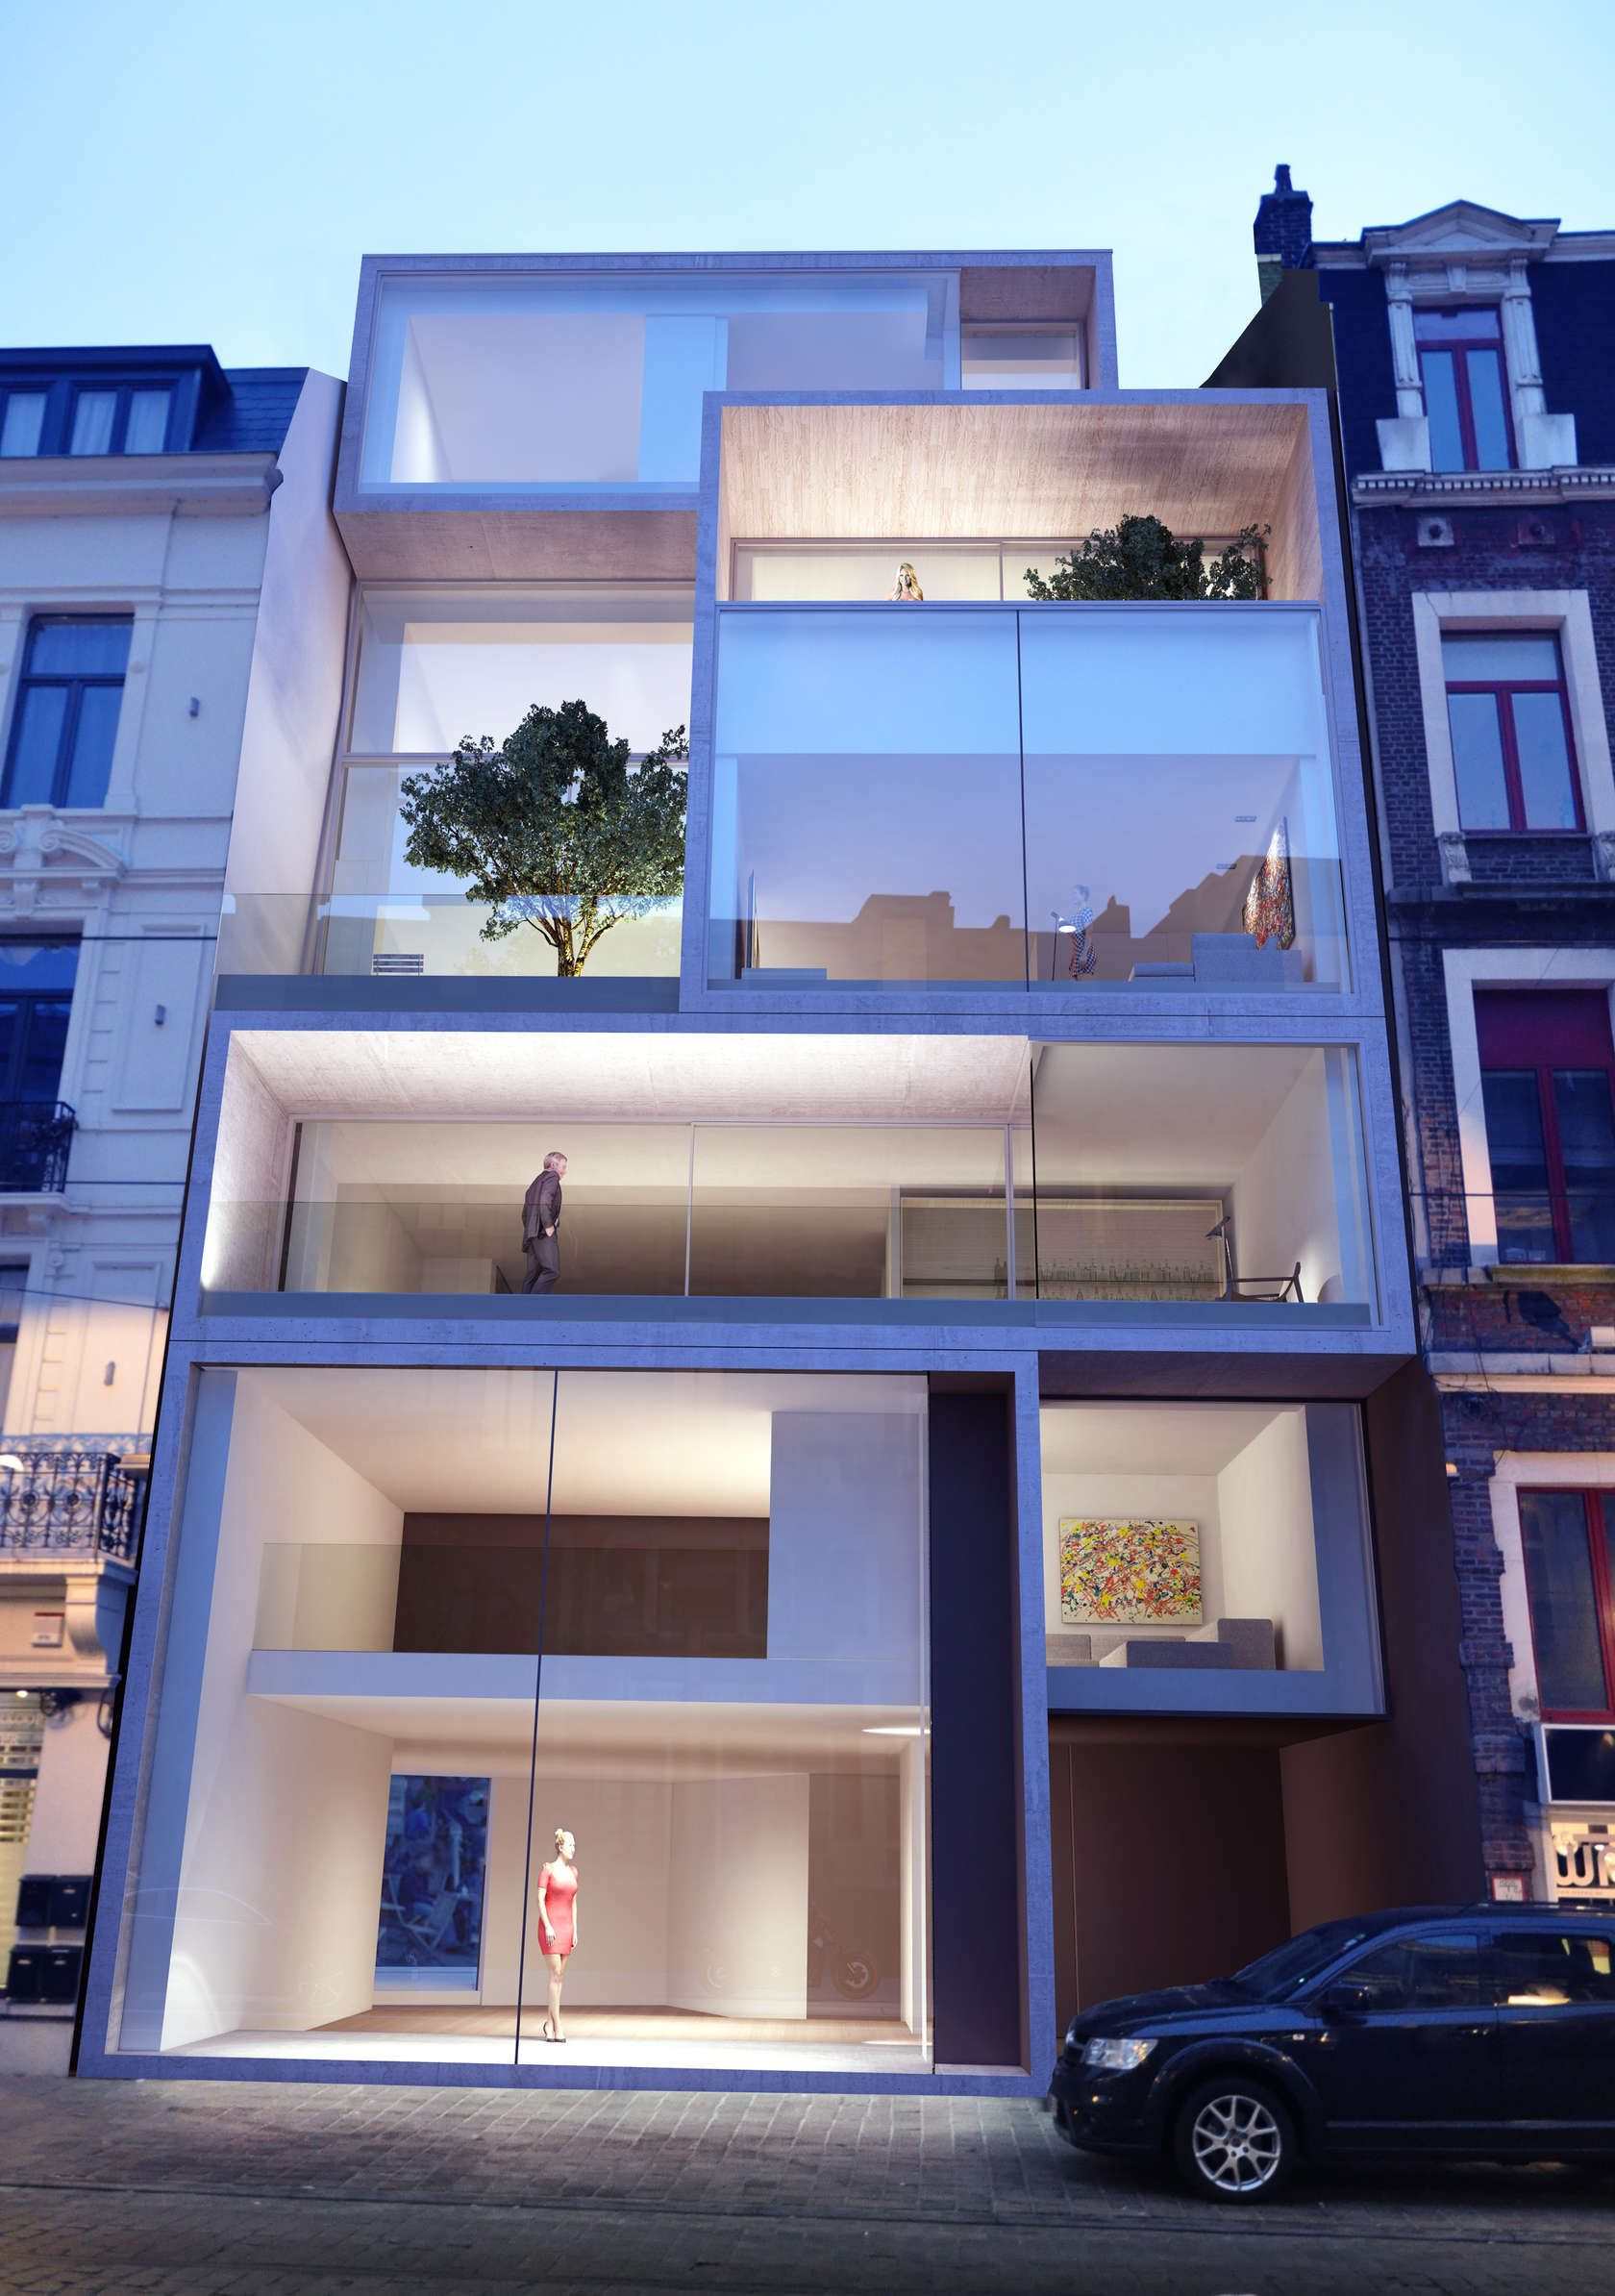 Located In The Heart Of Medieval Ghent City A Heartless 70 Building Dislocates A 19th Century Street The Brief Integrating Facade Design Apartment Building